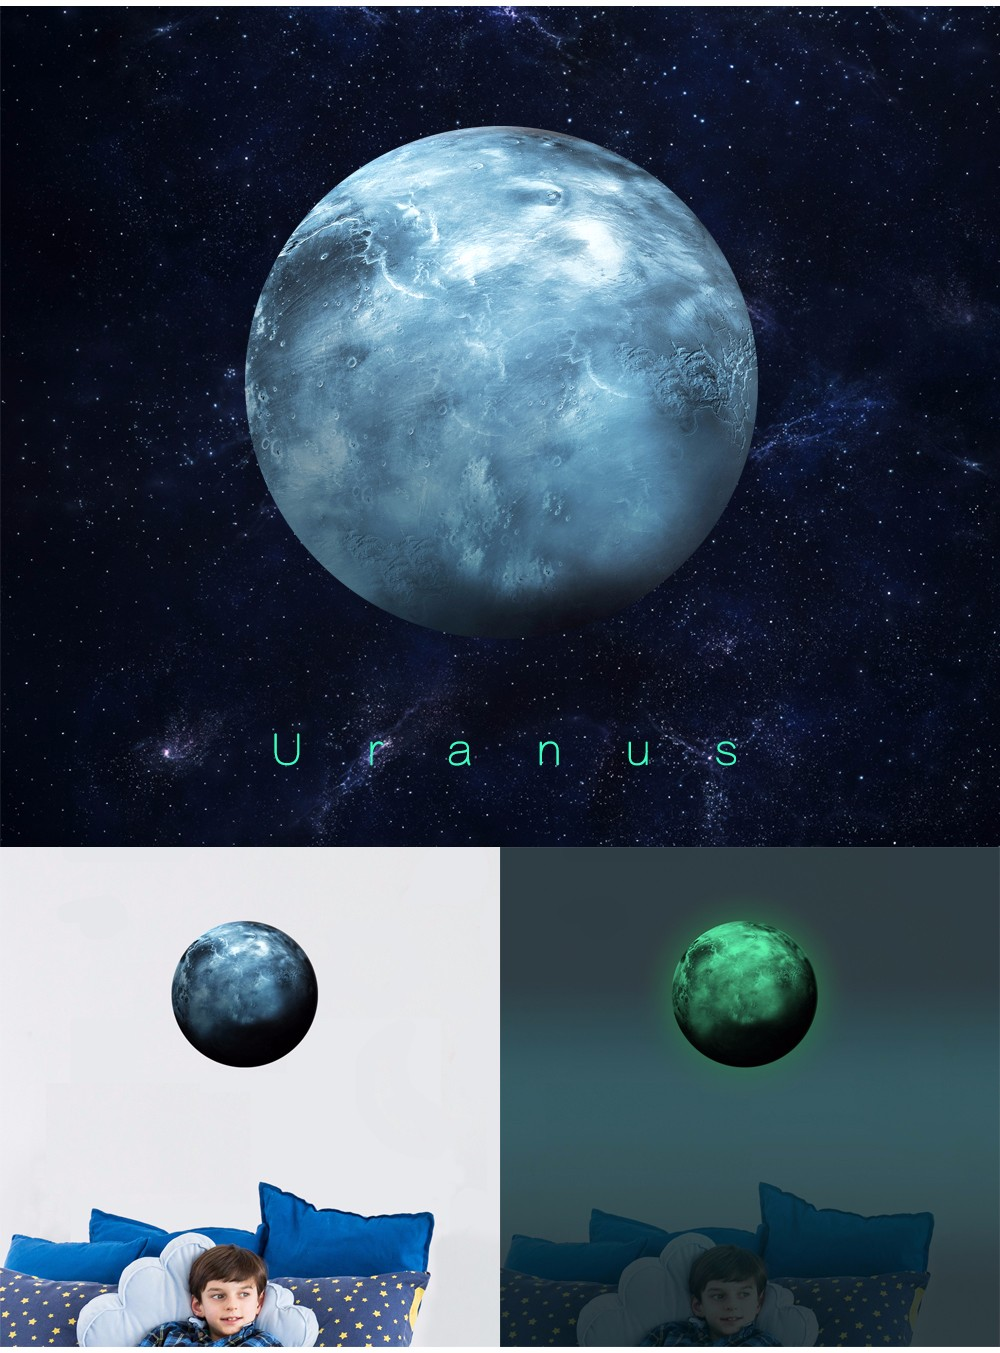 FL10138-U Home Decoration The Planets Uranus Glow in the Dark Star Sticker